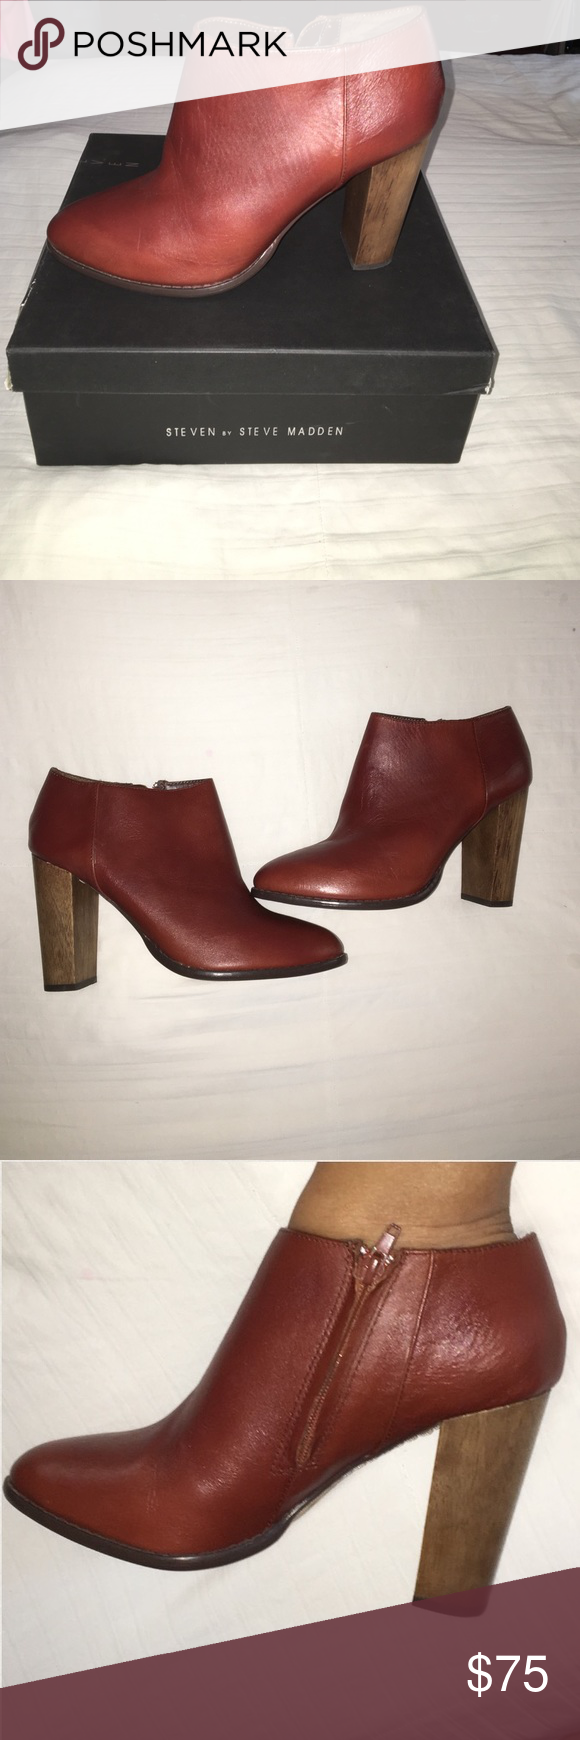 """Steven by Steven Madden Sandra Bootie New Features Leather Imported Synthetic sole, COGNAC color Heel measures approximately 4"""" A wooden heel contrasts beautifully with the sleek leather in this low-cut bootie. Brand new boots comes in box Steven by Steve Madden Shoes Ankle Boots & Booties"""